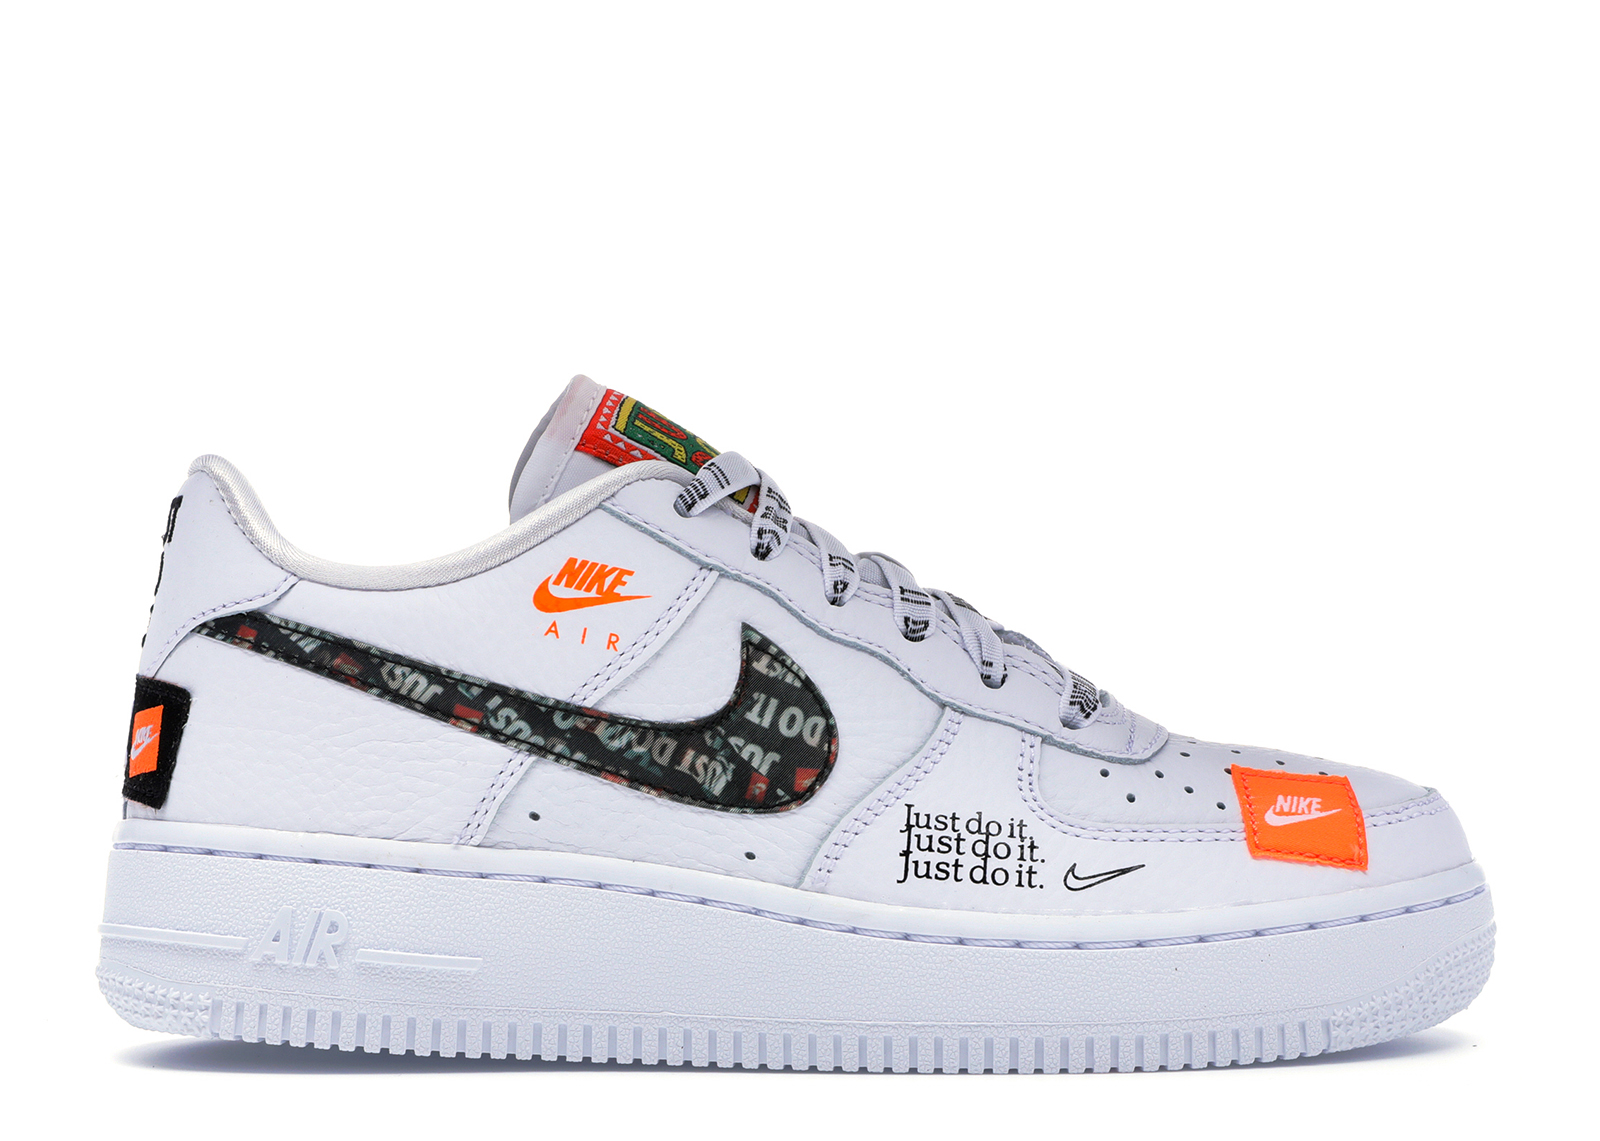 nike air force 1 just do i